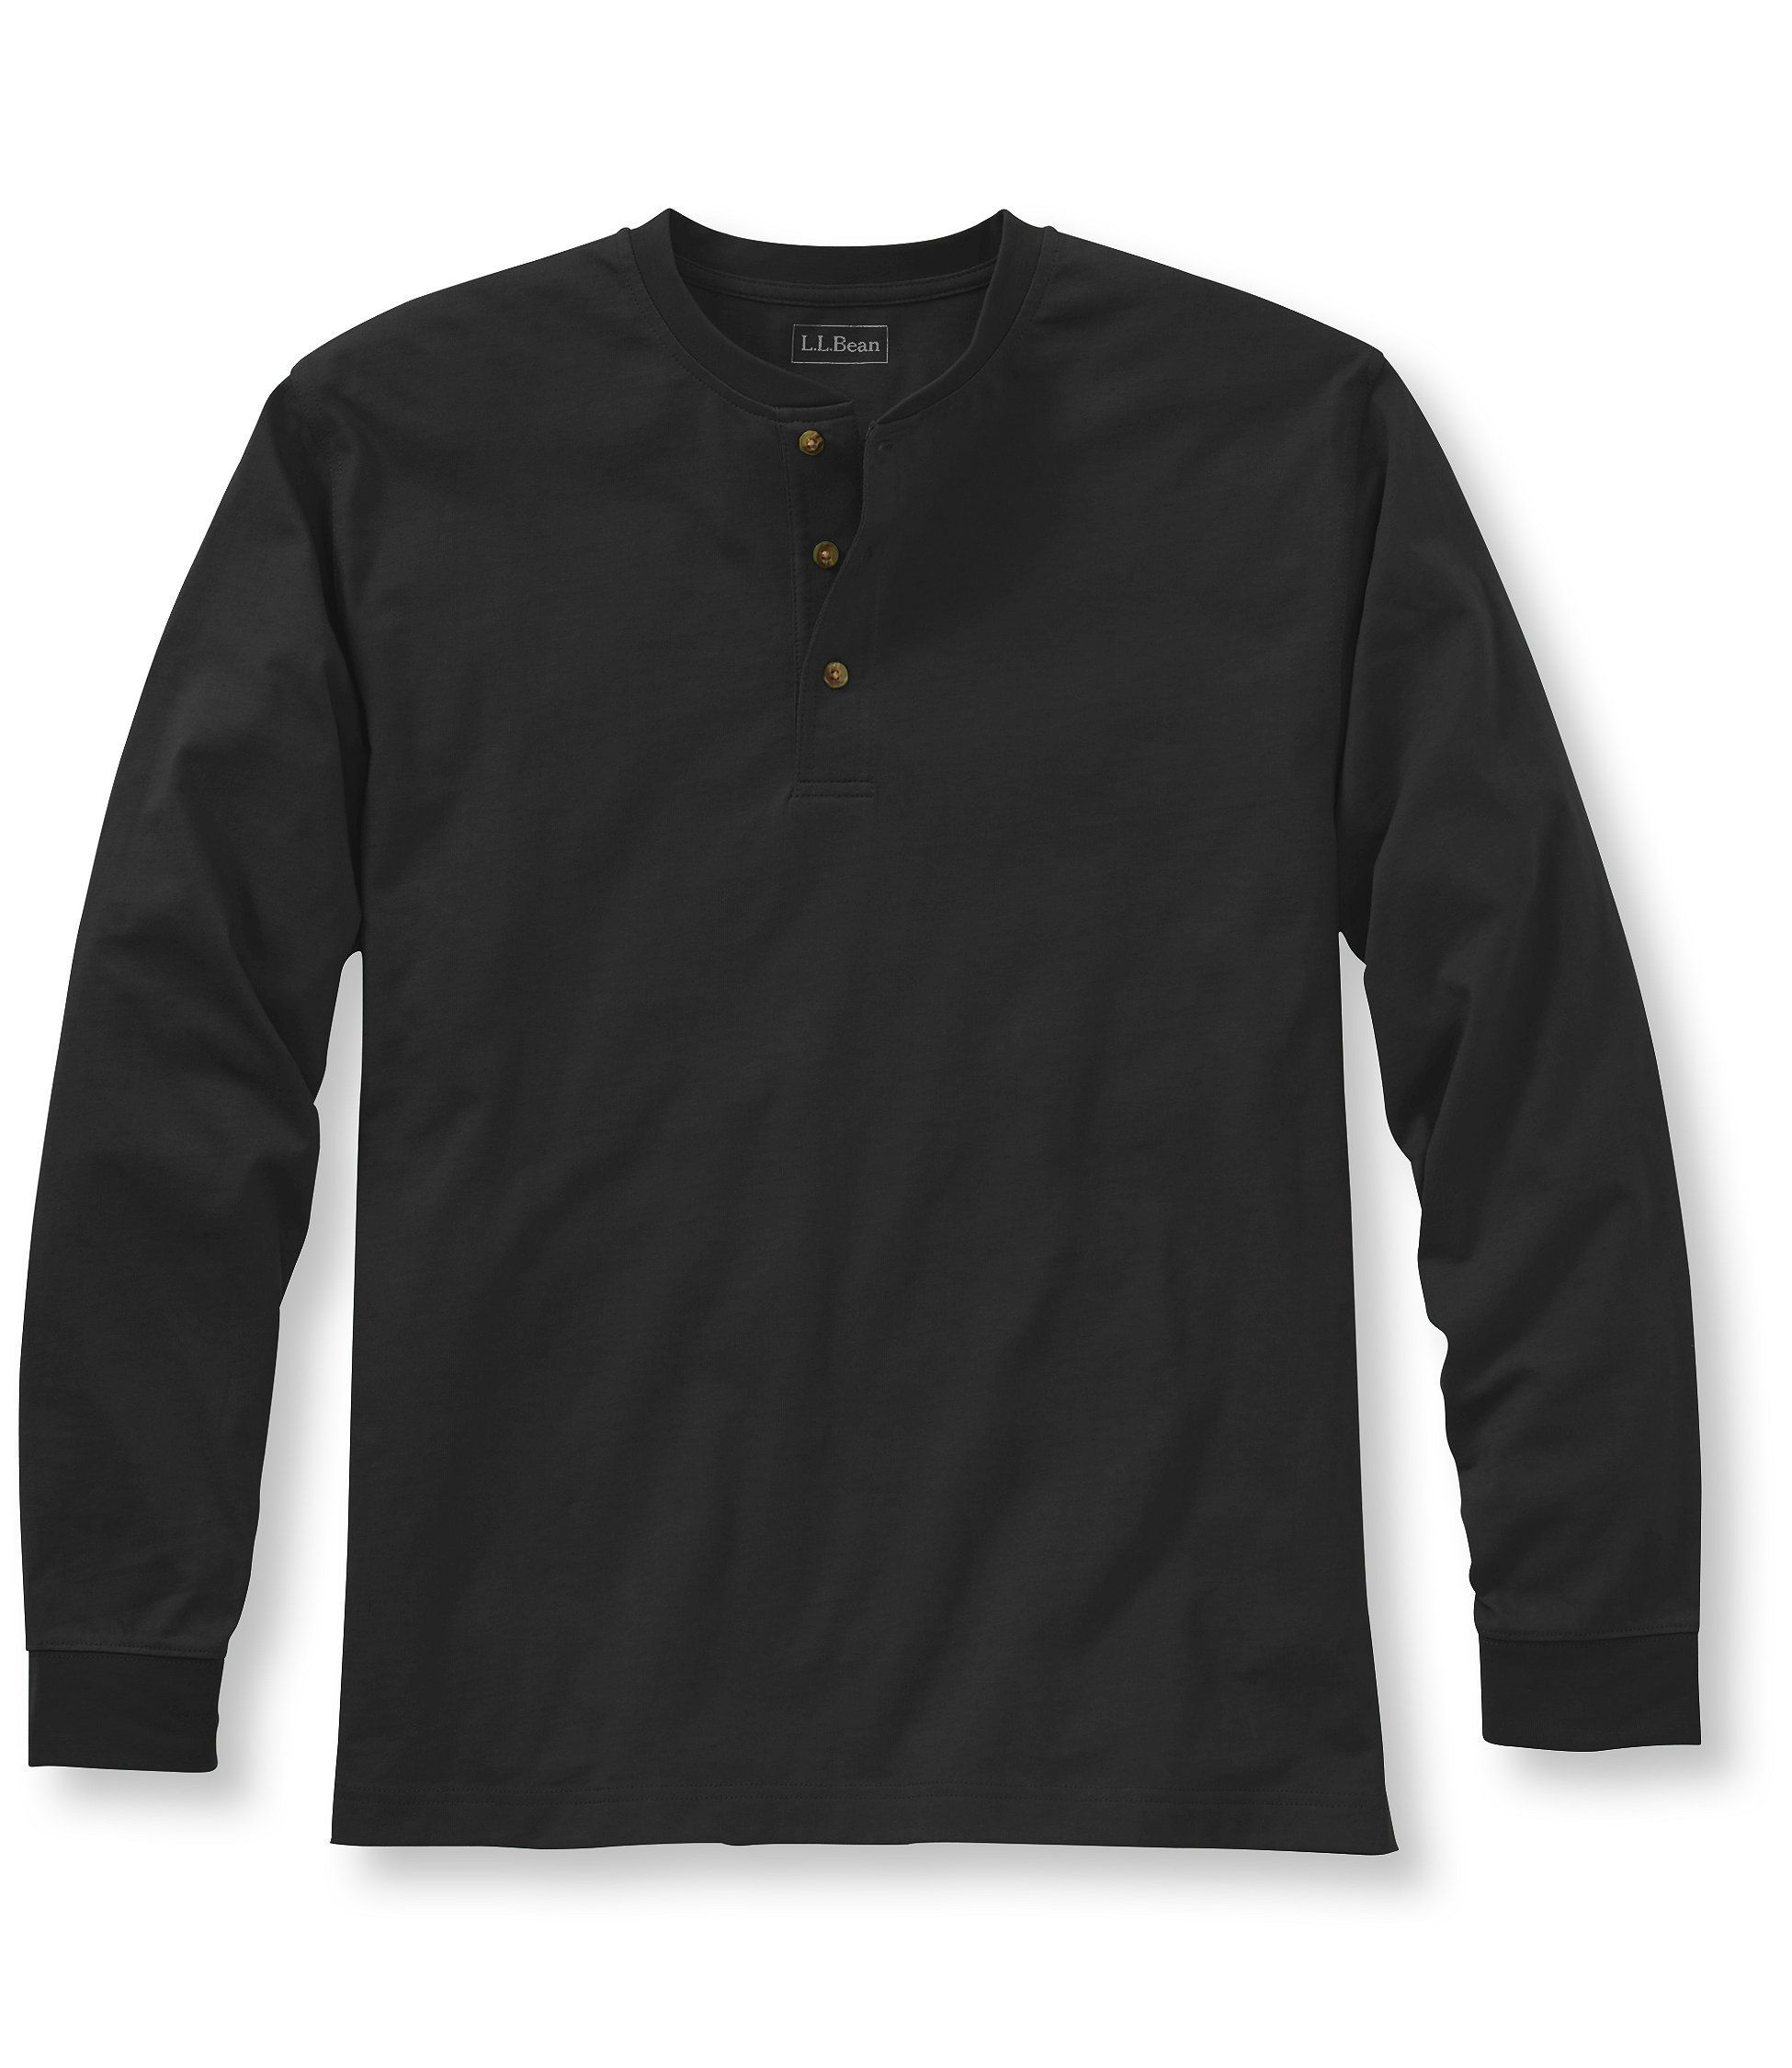 a5183d5bc497 Carefree Unshrinkable Tee | Products | Pinterest | Long sleeve ...